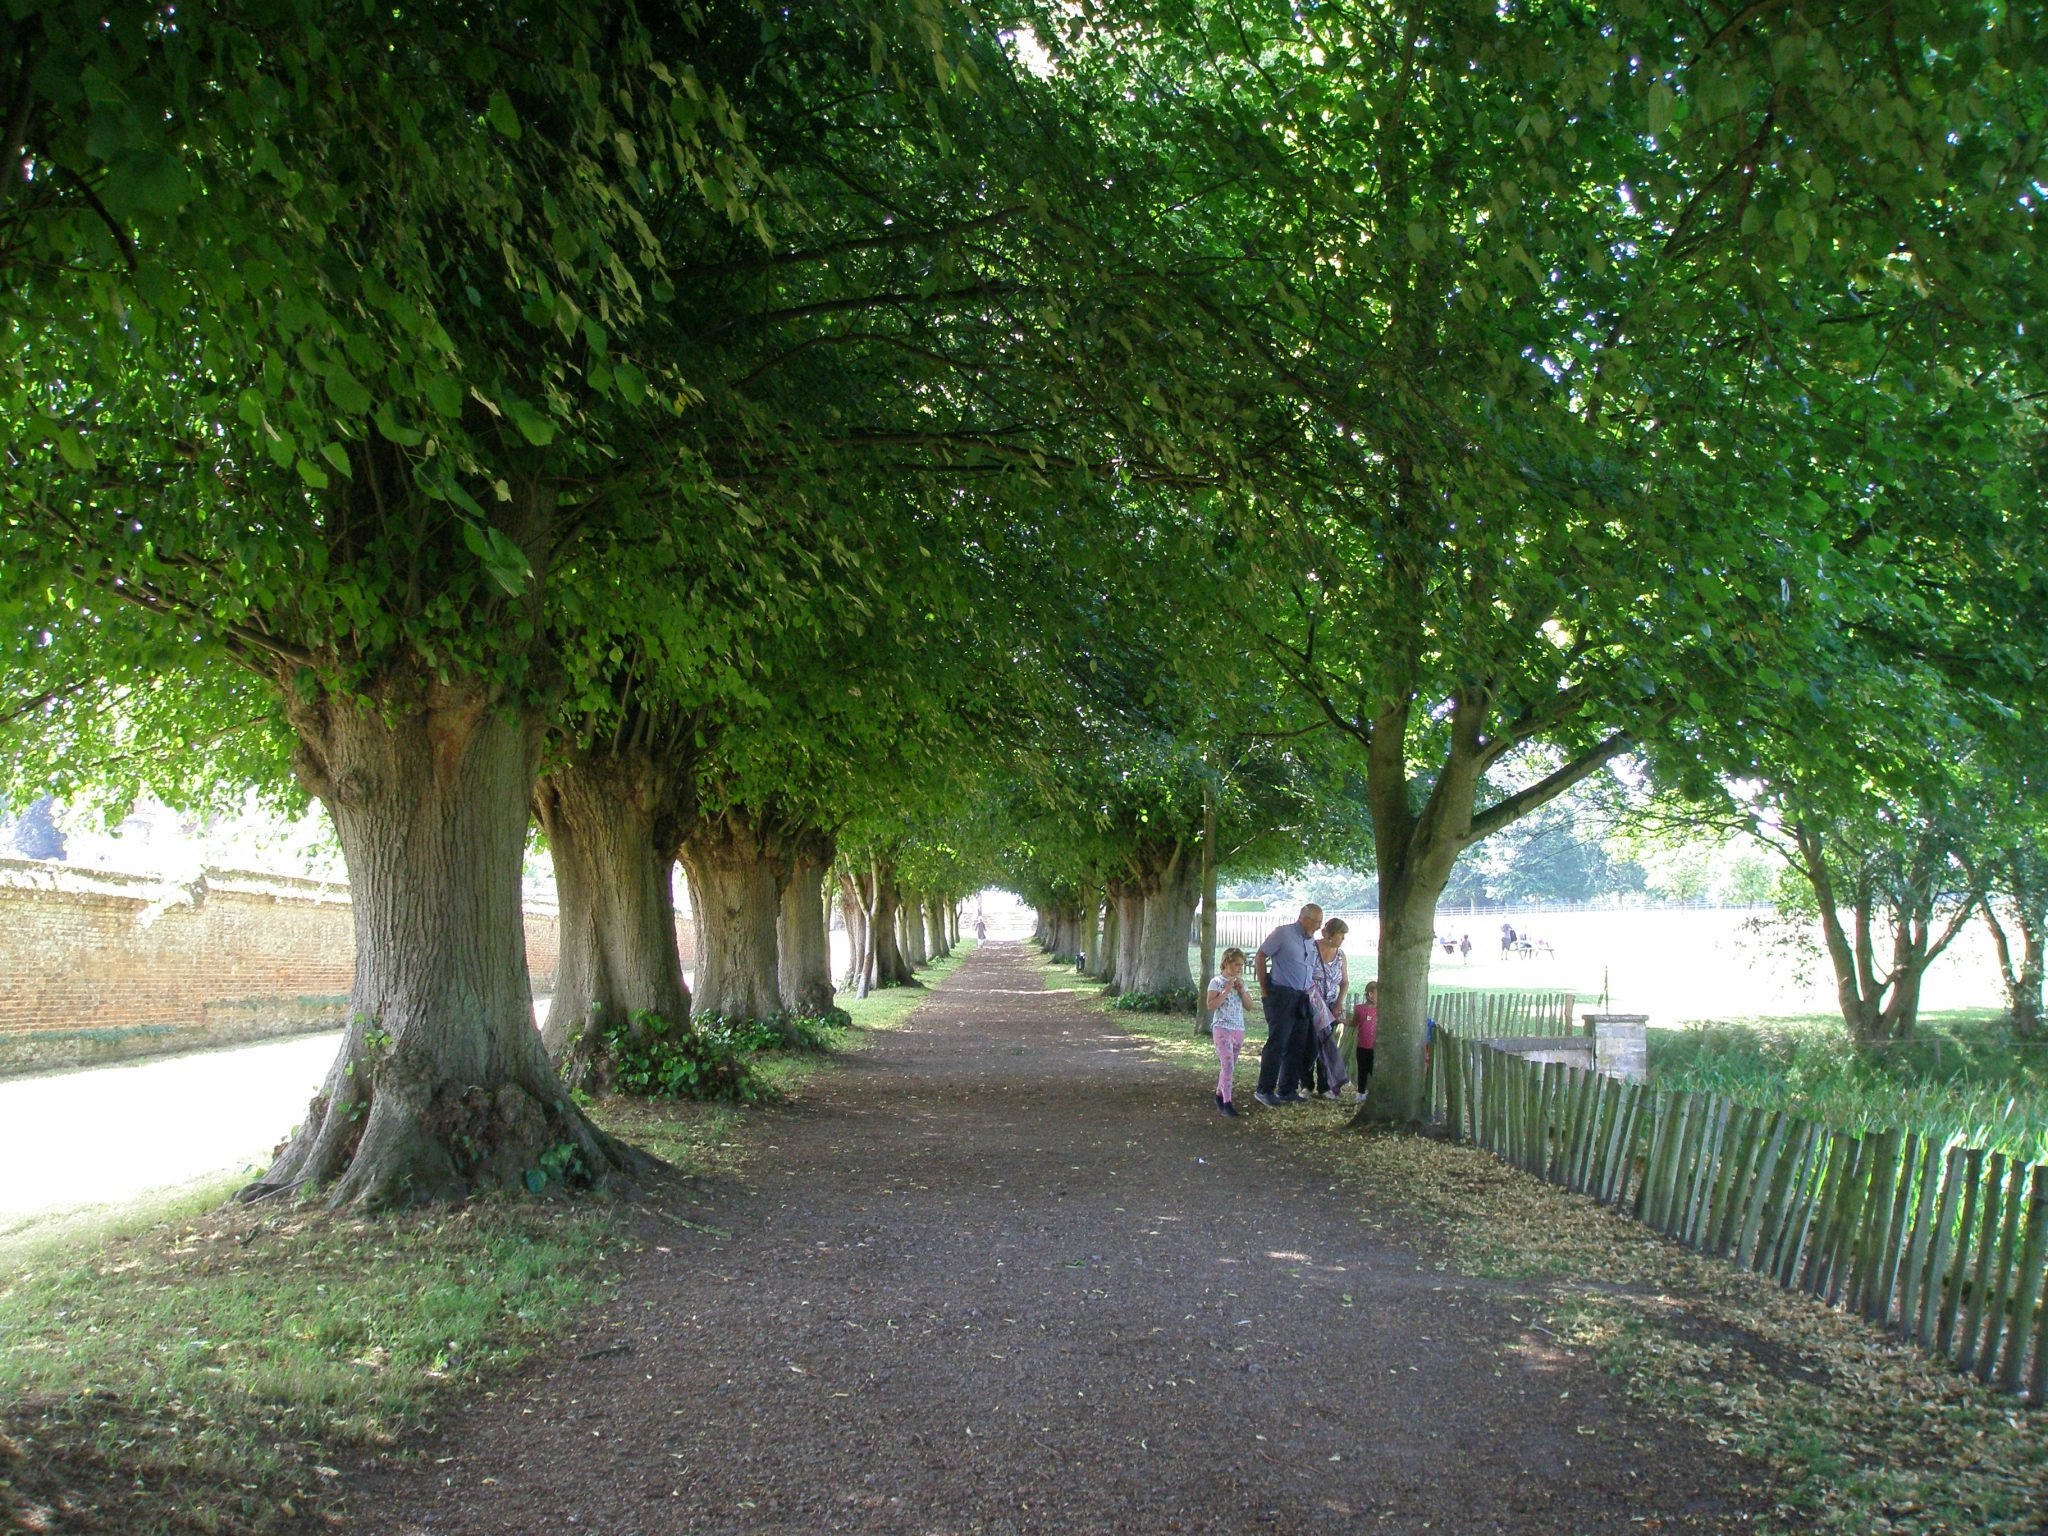 We entered the grounds via the Lime Walk, an avenue of large-leaved lime trees (planted with Tilia platyphyllos & Tilia vulgaris)